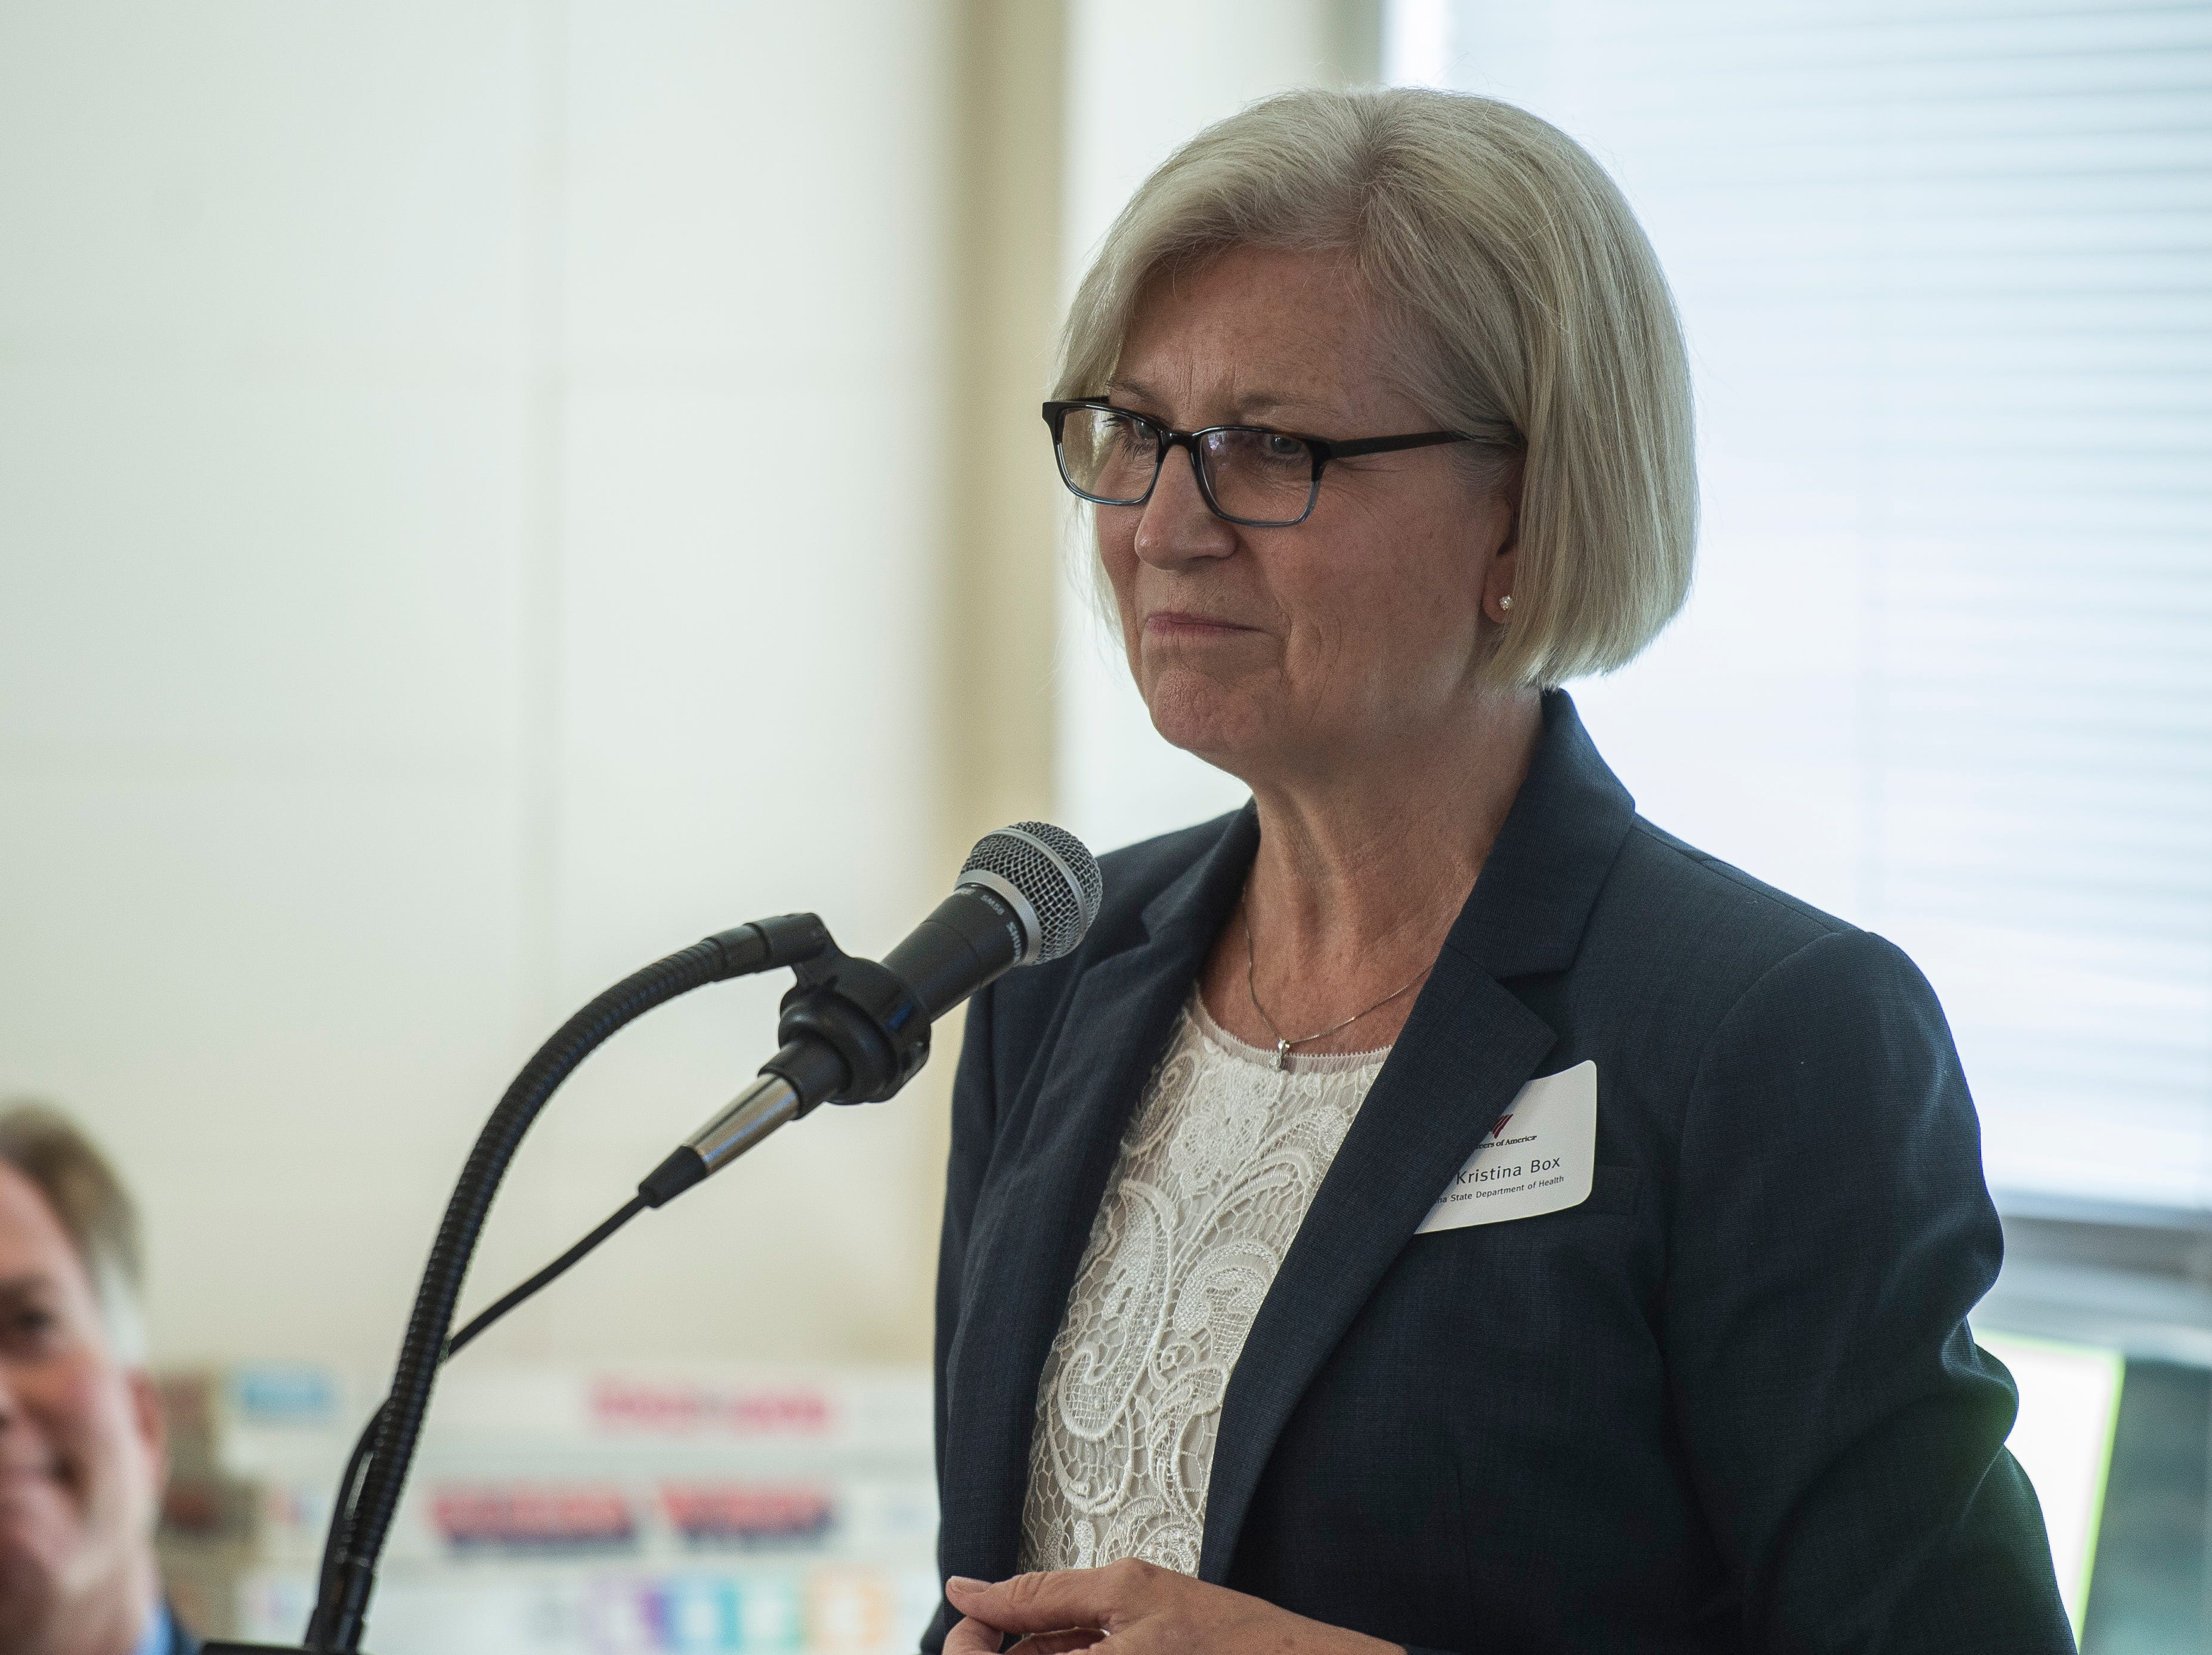 Indiana State Health Commissioner Kristina Box speaks during a news conference celebrating the opening of the Winchester House, a new drug treatment facility for women, in Winchester, Ind., on Wednesday, Aug. 1, 2018.